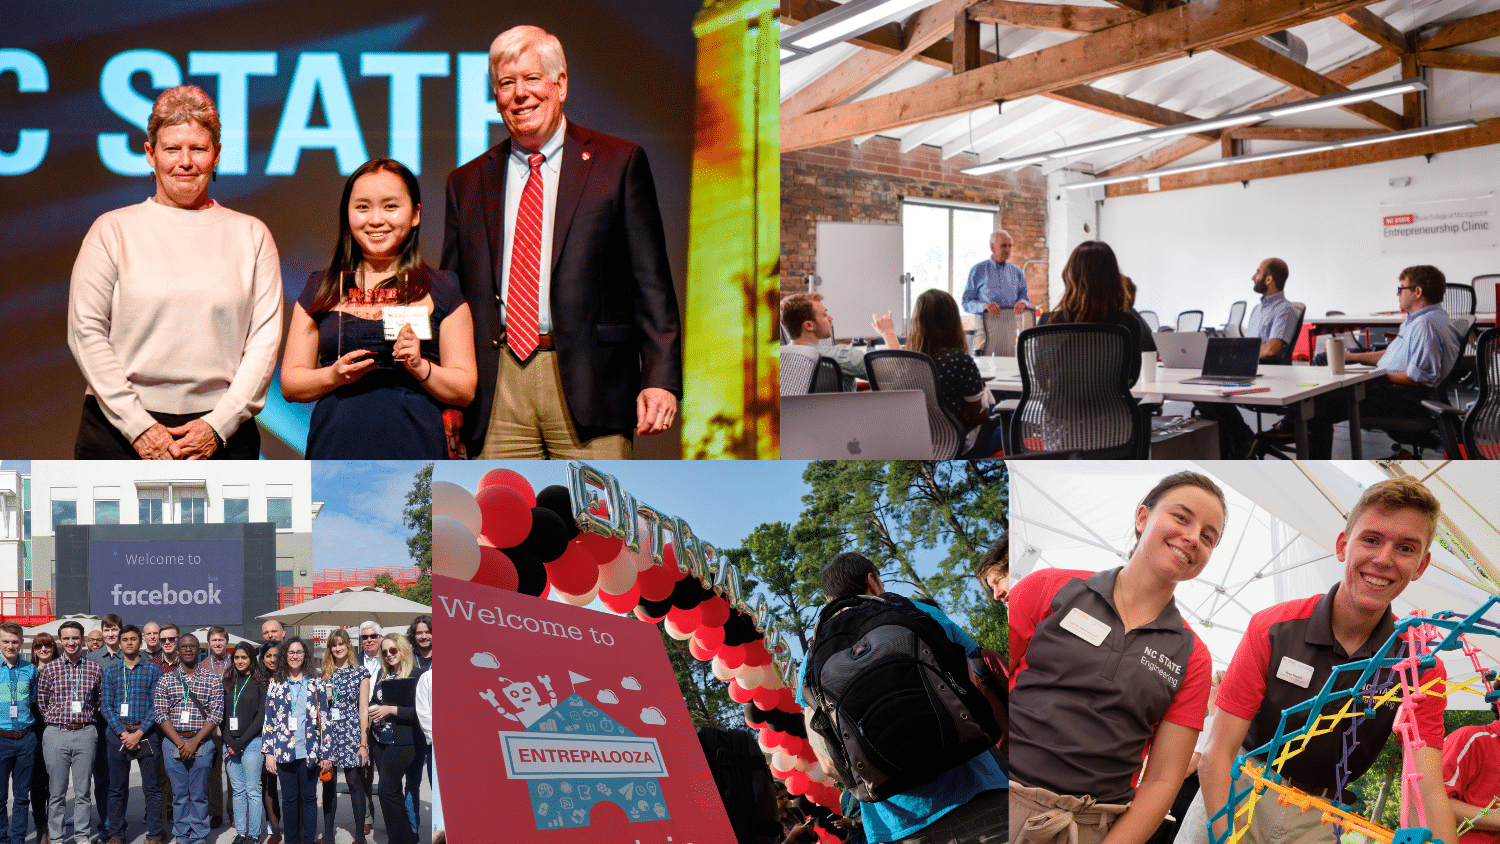 Collage of photos from previous NC State Entrepreneurship events and programs